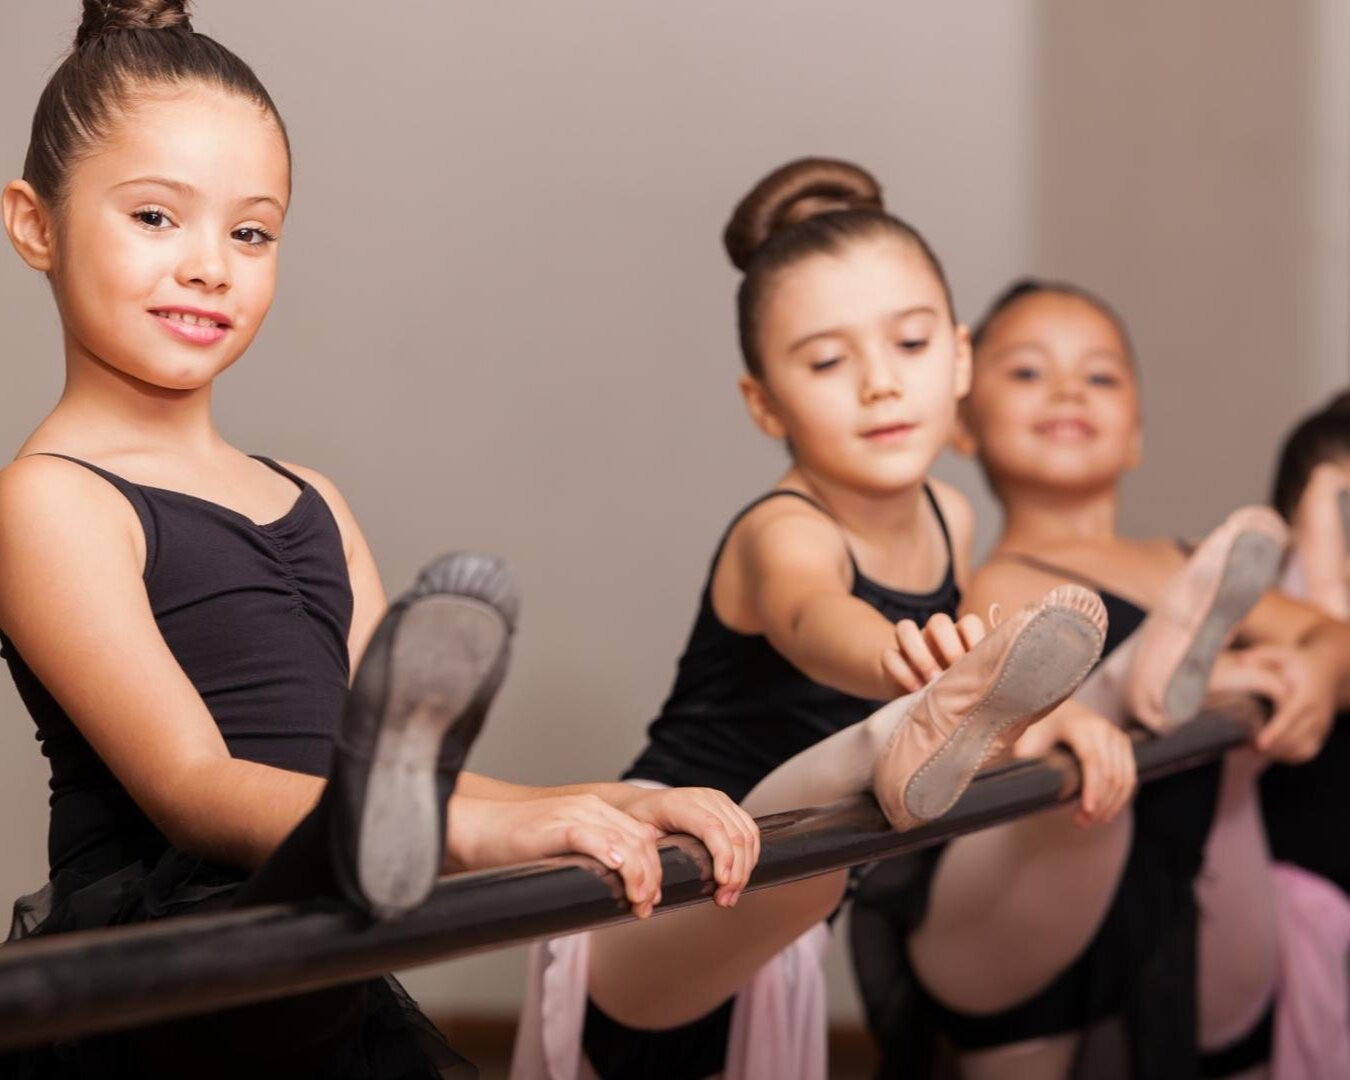 DANCE CLASSES - Find your passion in one of our many dance classes! From kids to adults, beginner to advanced...we have the perfect fit for you.